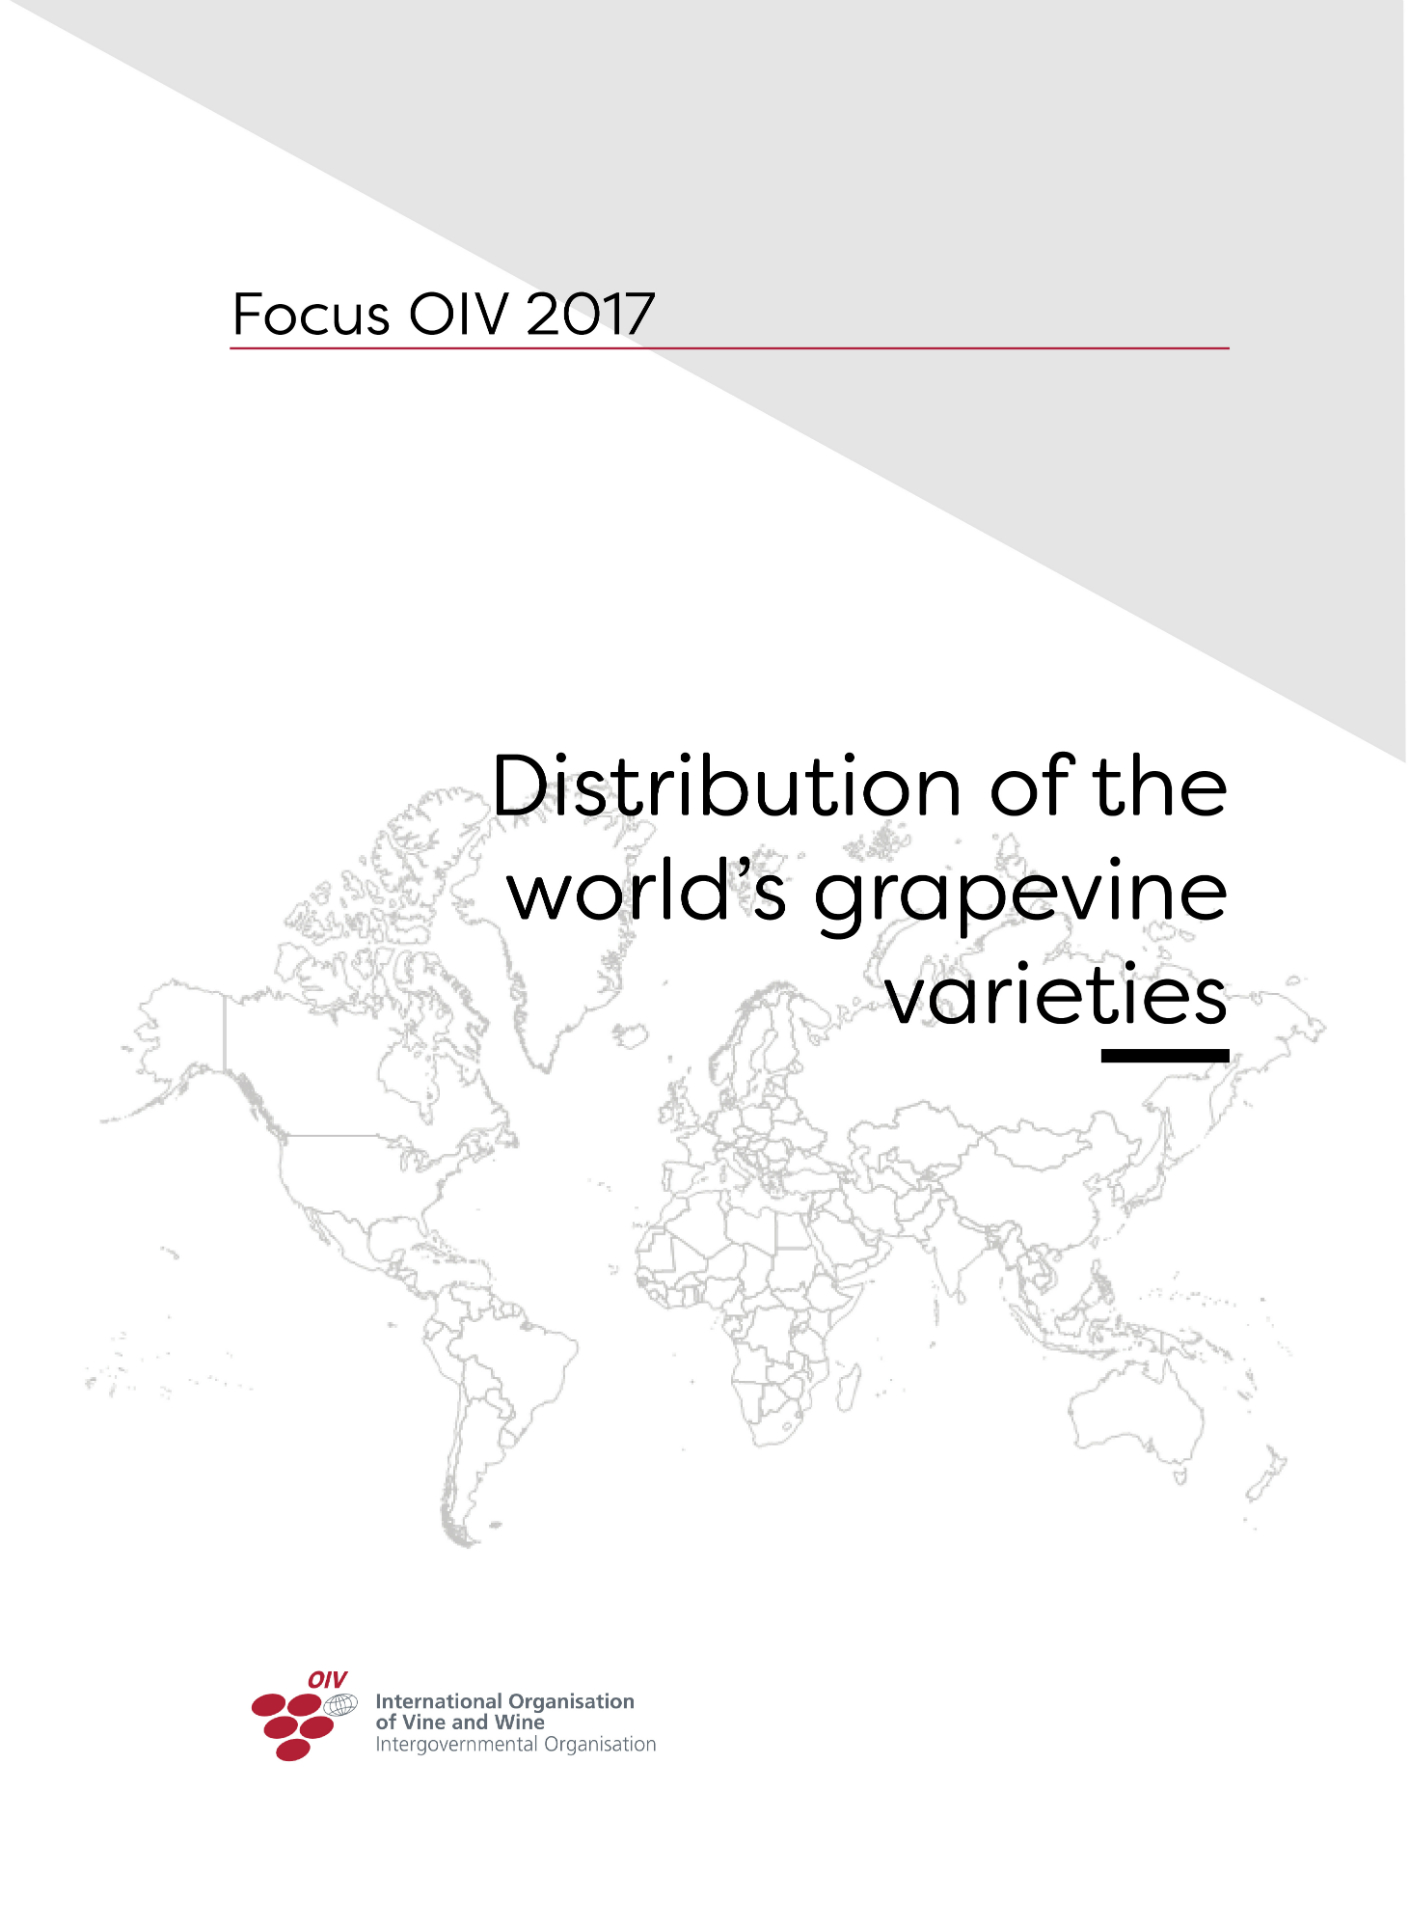 The distribution of the world's grapevine varieties: new OIV study available!